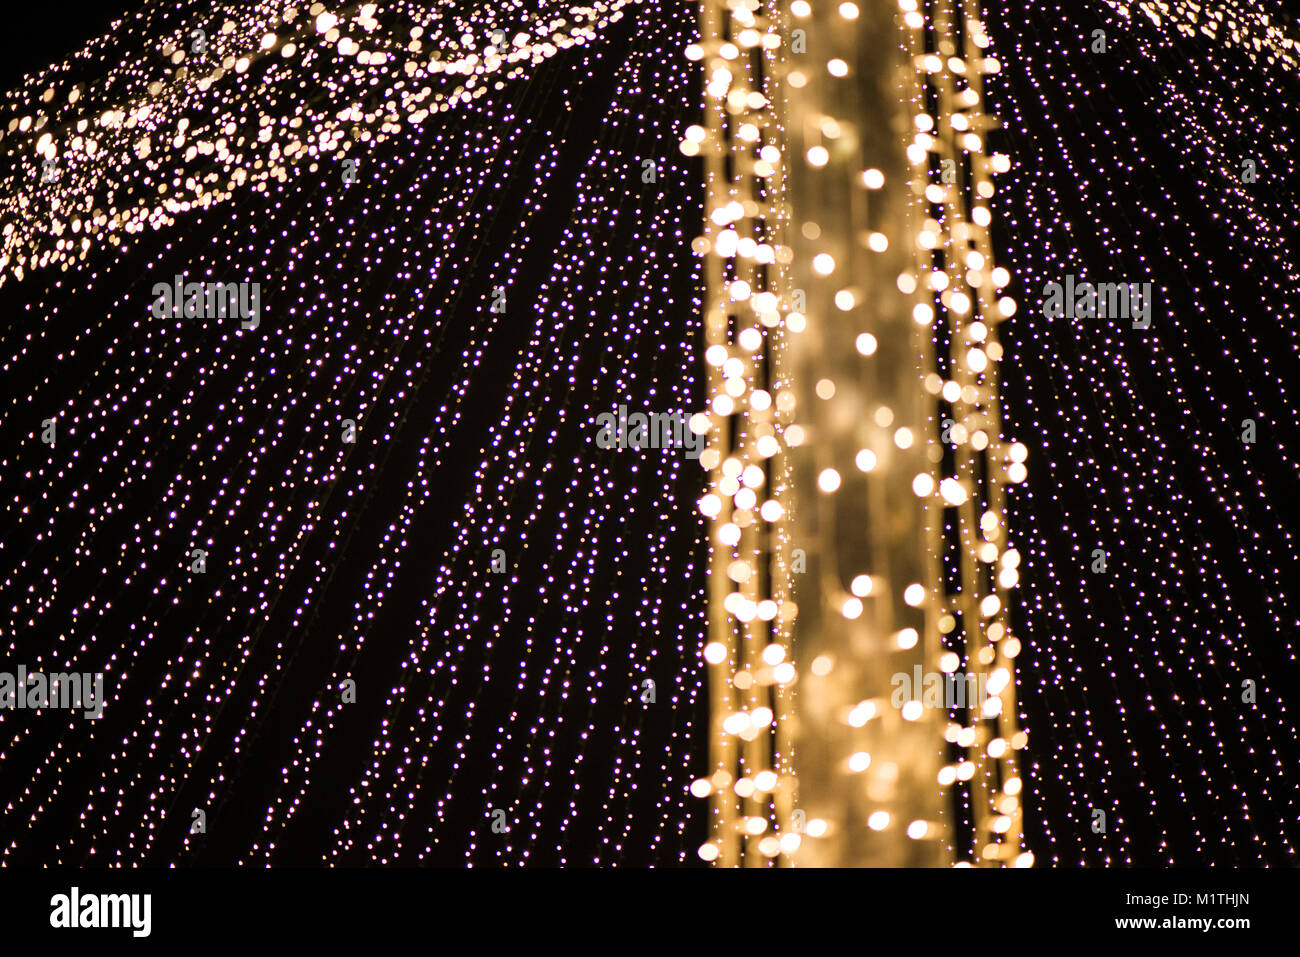 Abstract Christmas tree, colorful, blurry background. Glowing and sparkling lights in city center in Christmas market Stock Photo